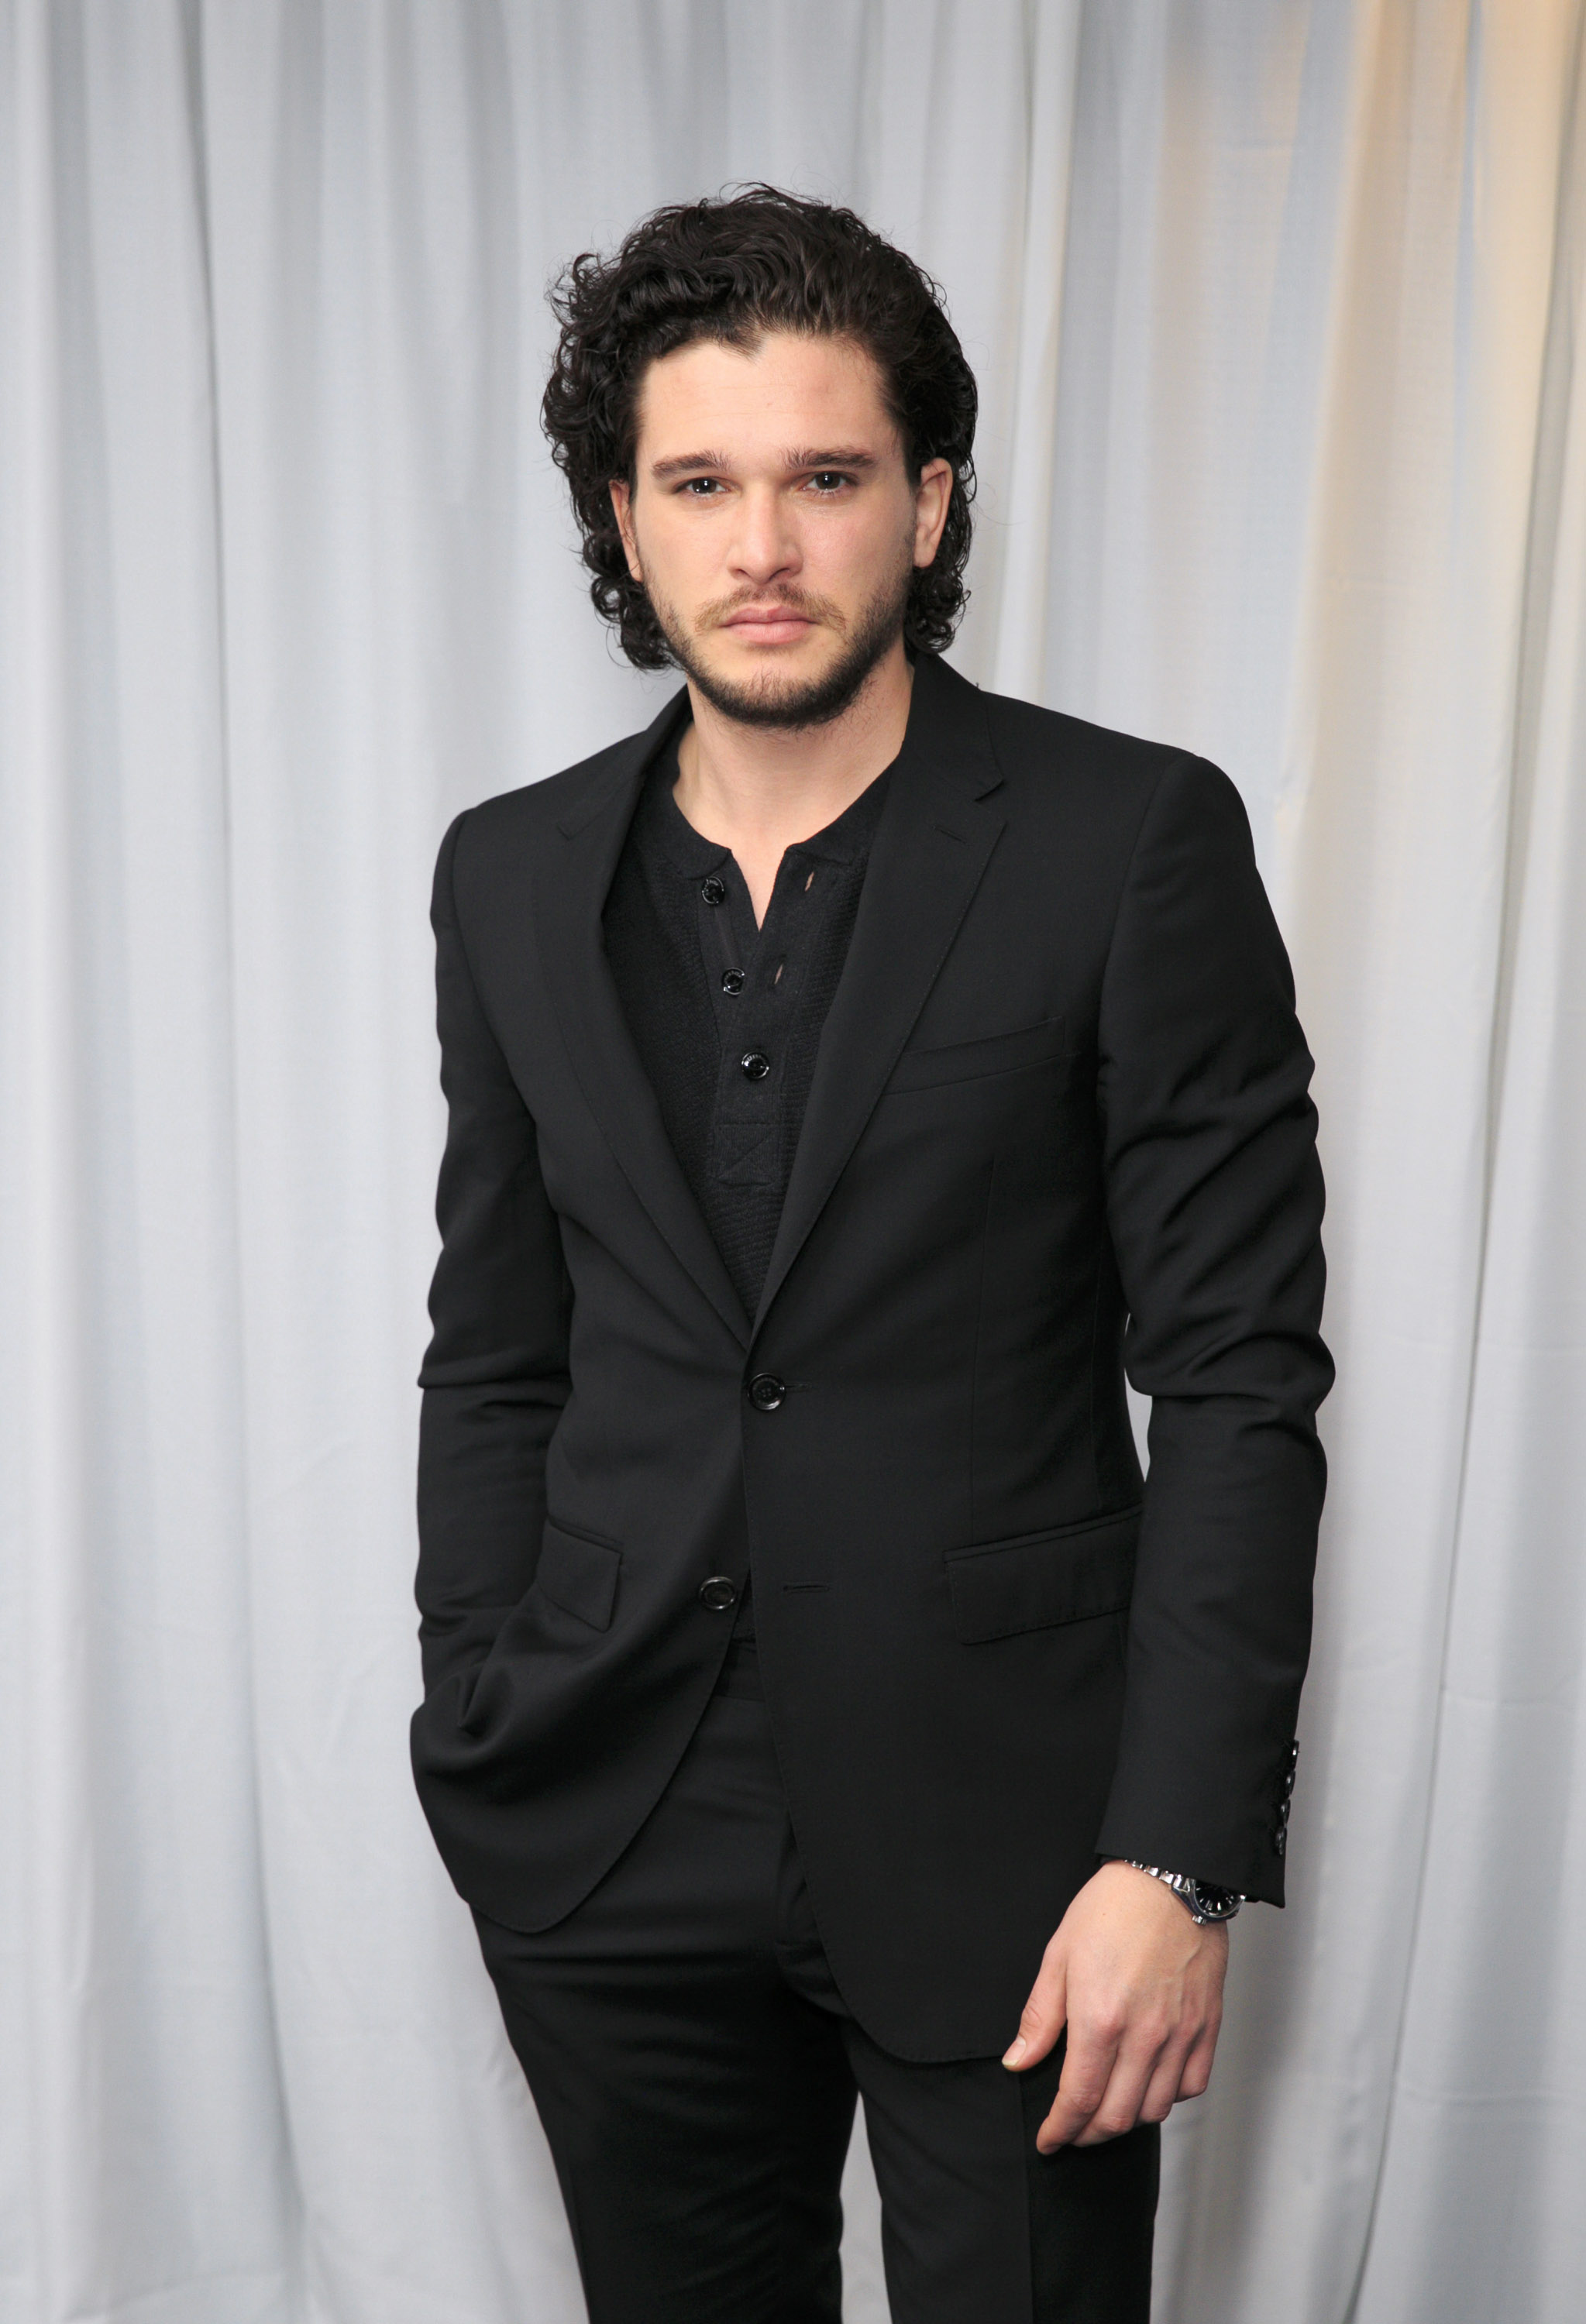 Kit Harington attends the Jameson Empire Awards 2015 at Grosvenor House, on March 29, 2015 in London, England.